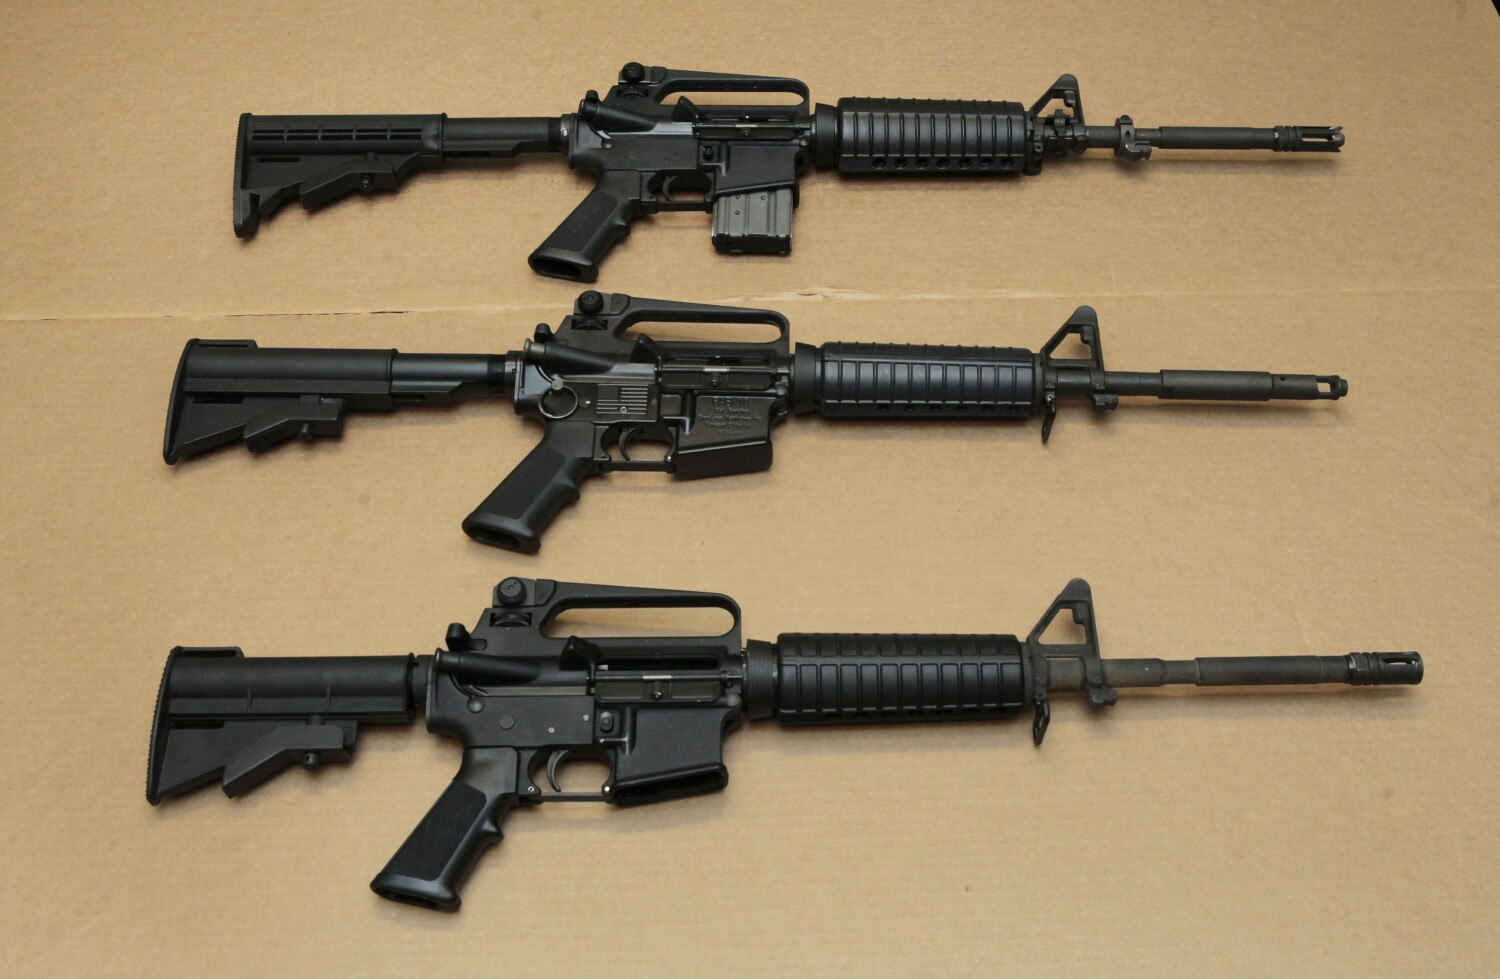 Column: An AR-15 is like a pocket knife? Maybe federal judges shouldn't get lifetime appointments